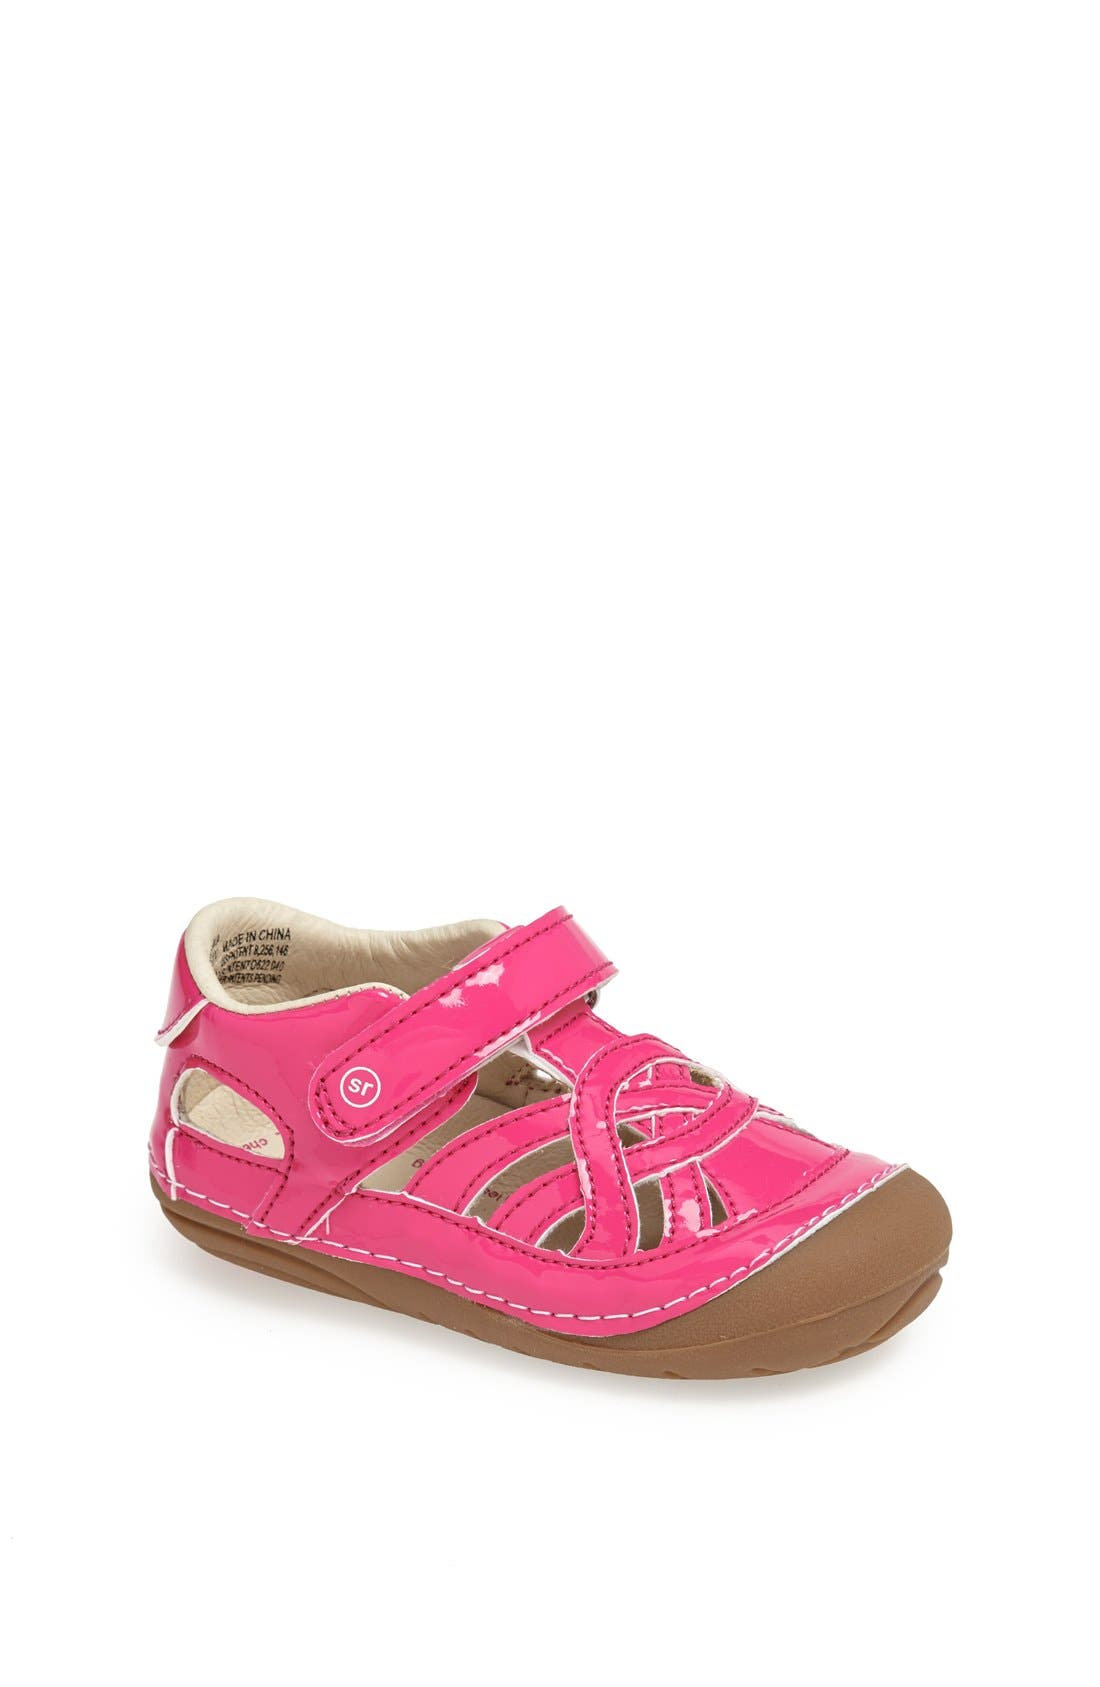 Alternate Image 1 Selected - Stride Rite 'Uma' Slip-On (Baby & Walker)